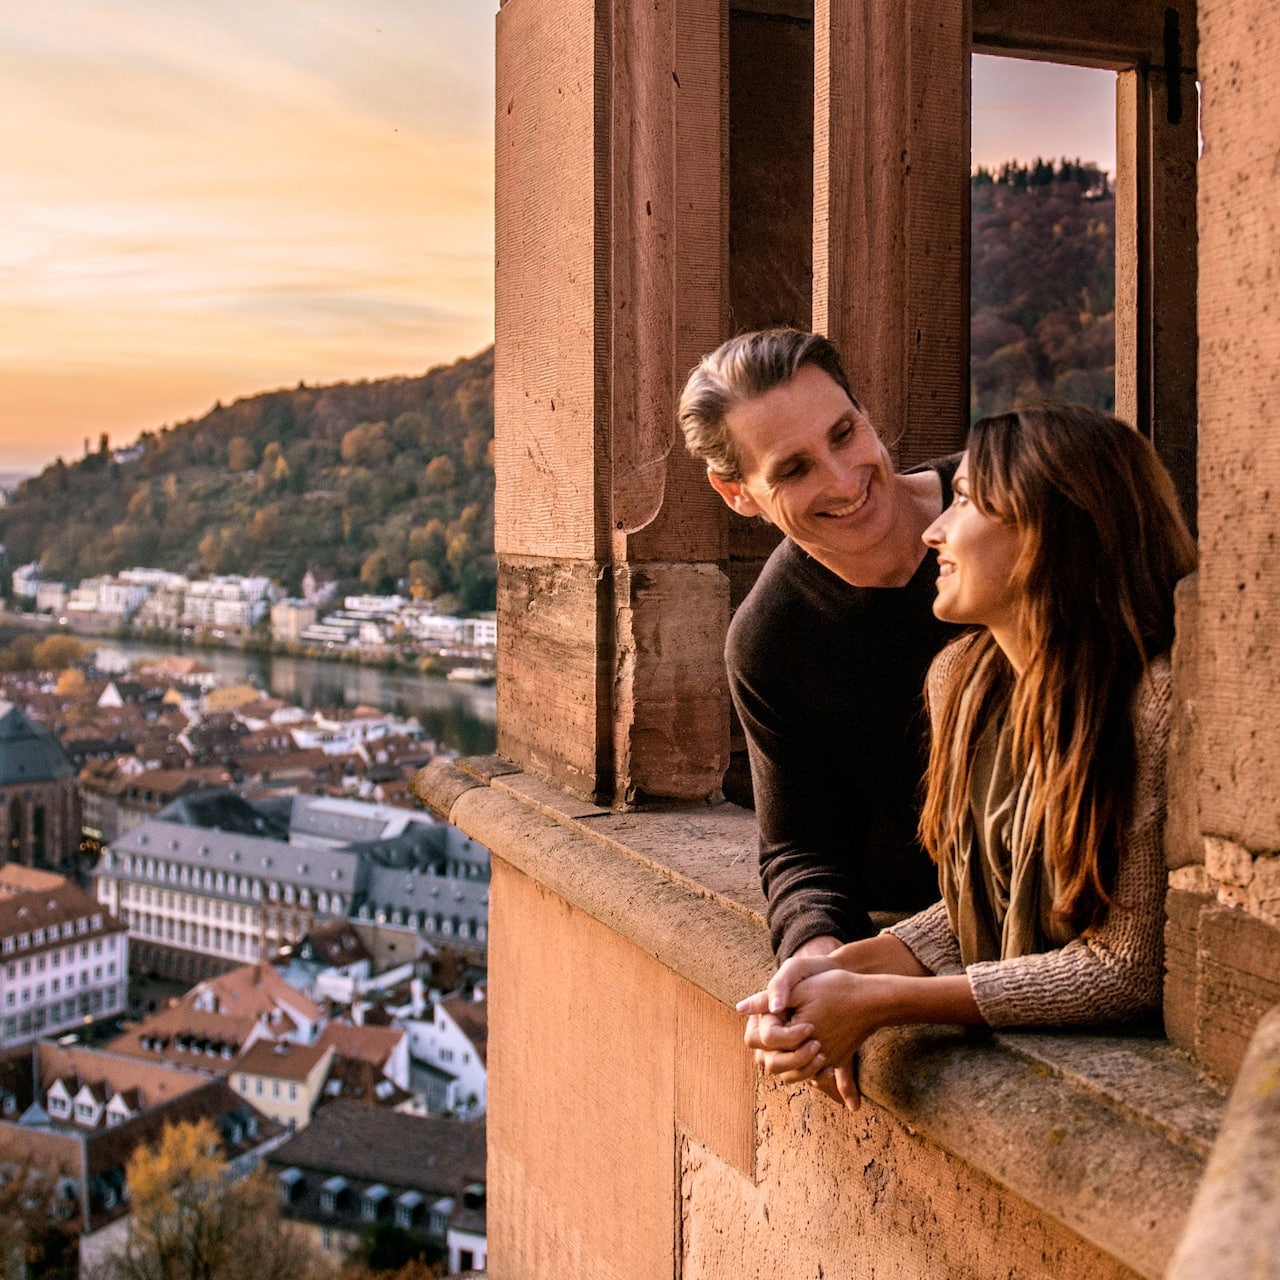 A man and woman share a romantic moment while looking out of a window at Heidelberg Castle with the city of Mannheim in the distance